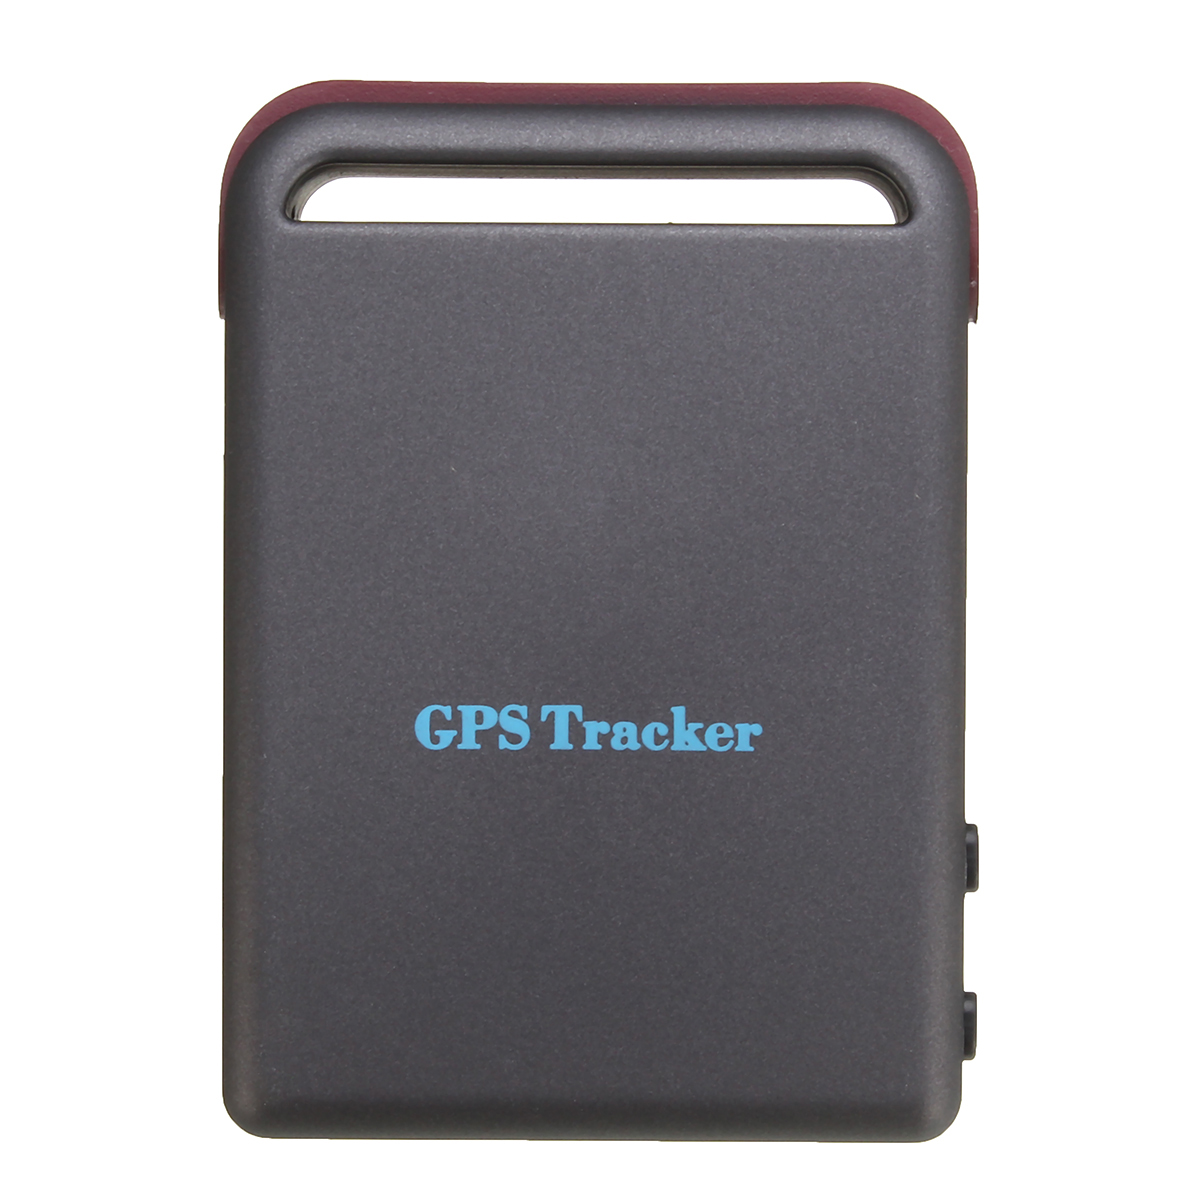 Real-time Vehicle gps tracker Based on GSM/GPRS network and GPS satellites Remote Monitor SOS Vehicle Rental & Fleet Management TK102 247907178